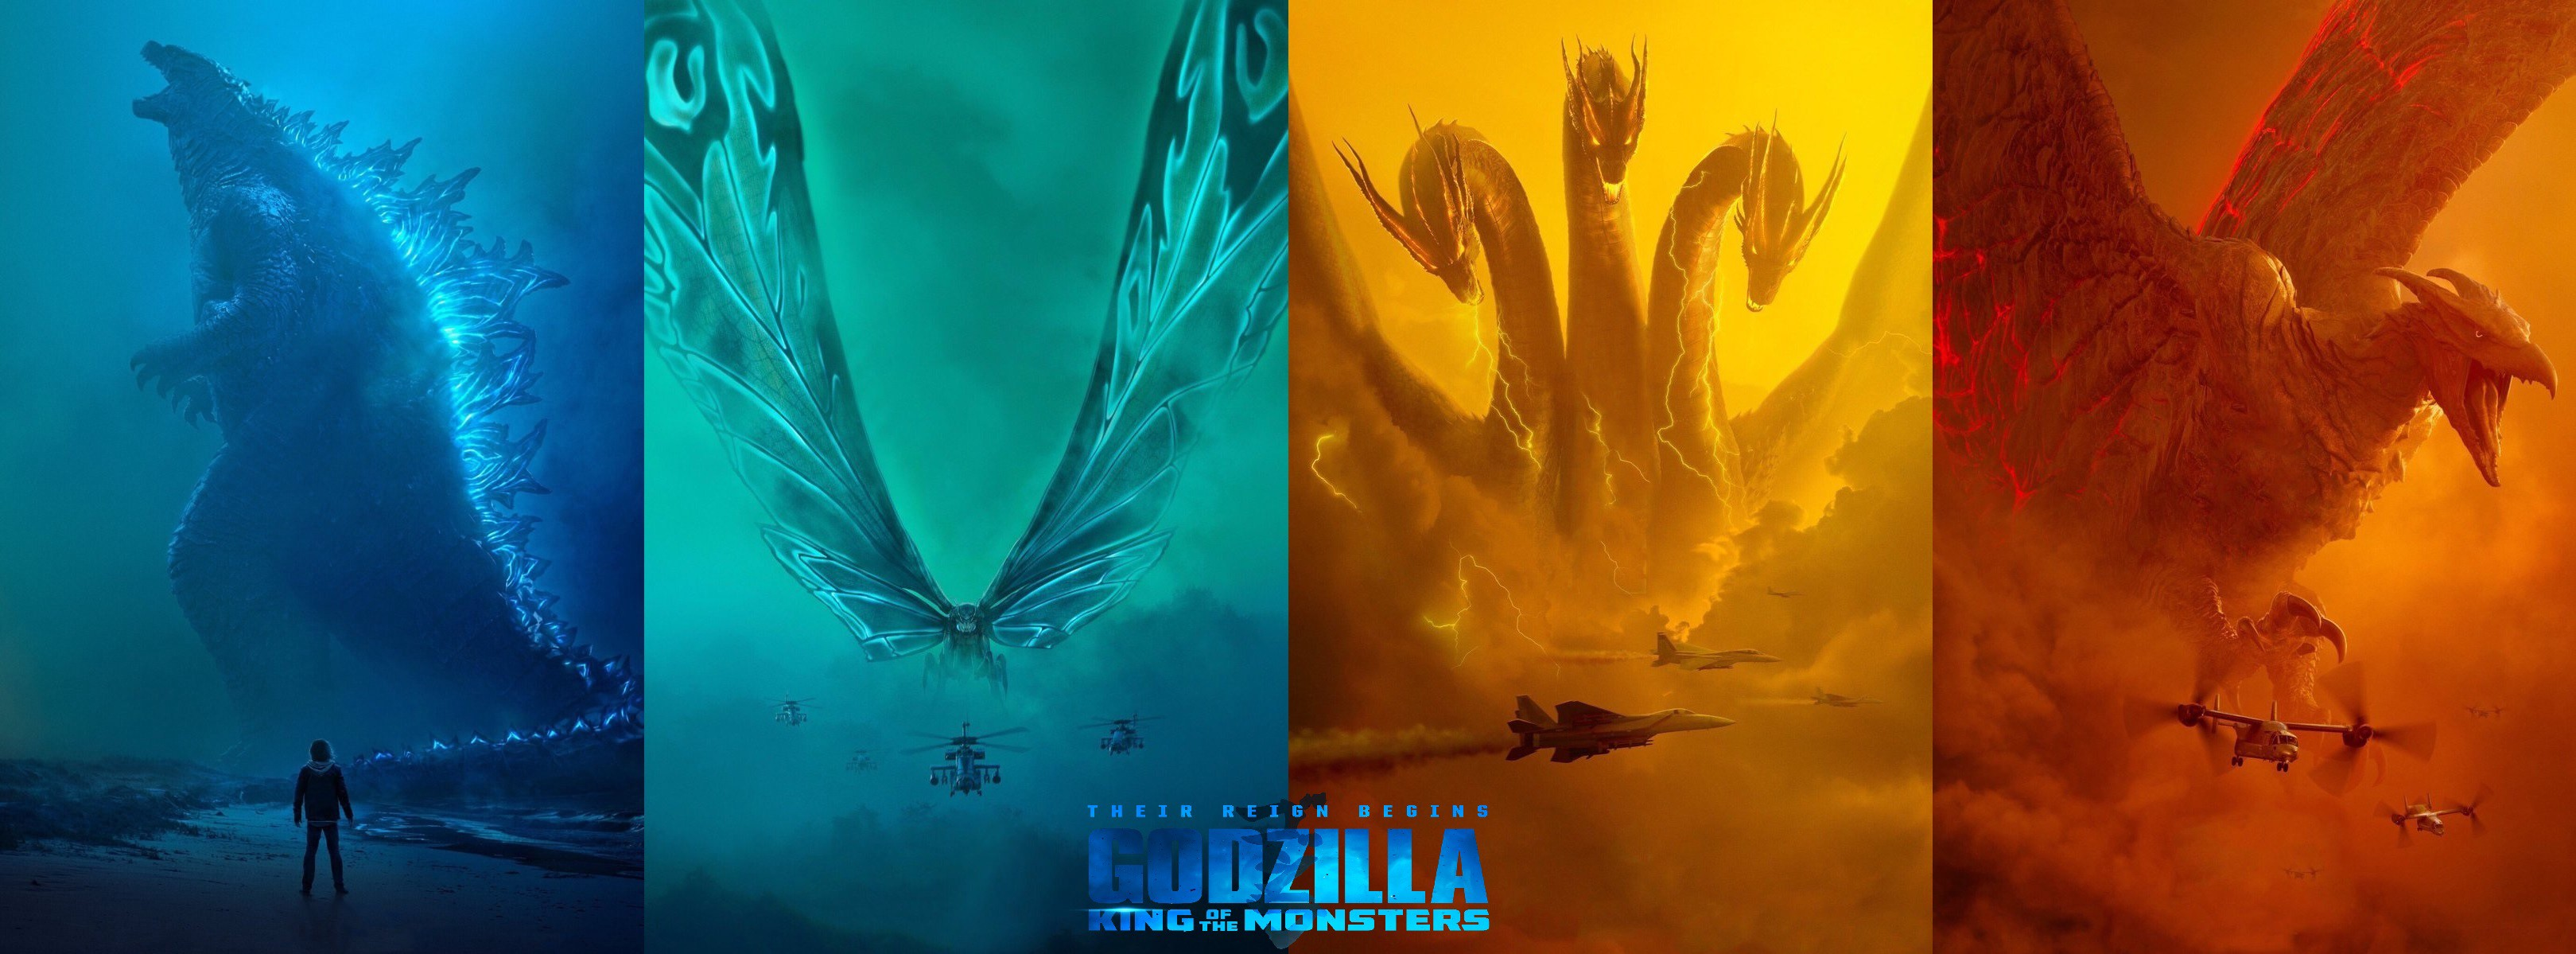 Movie Review Godzilla King Of The Monsters By Patrick Coyle Simmons Medium